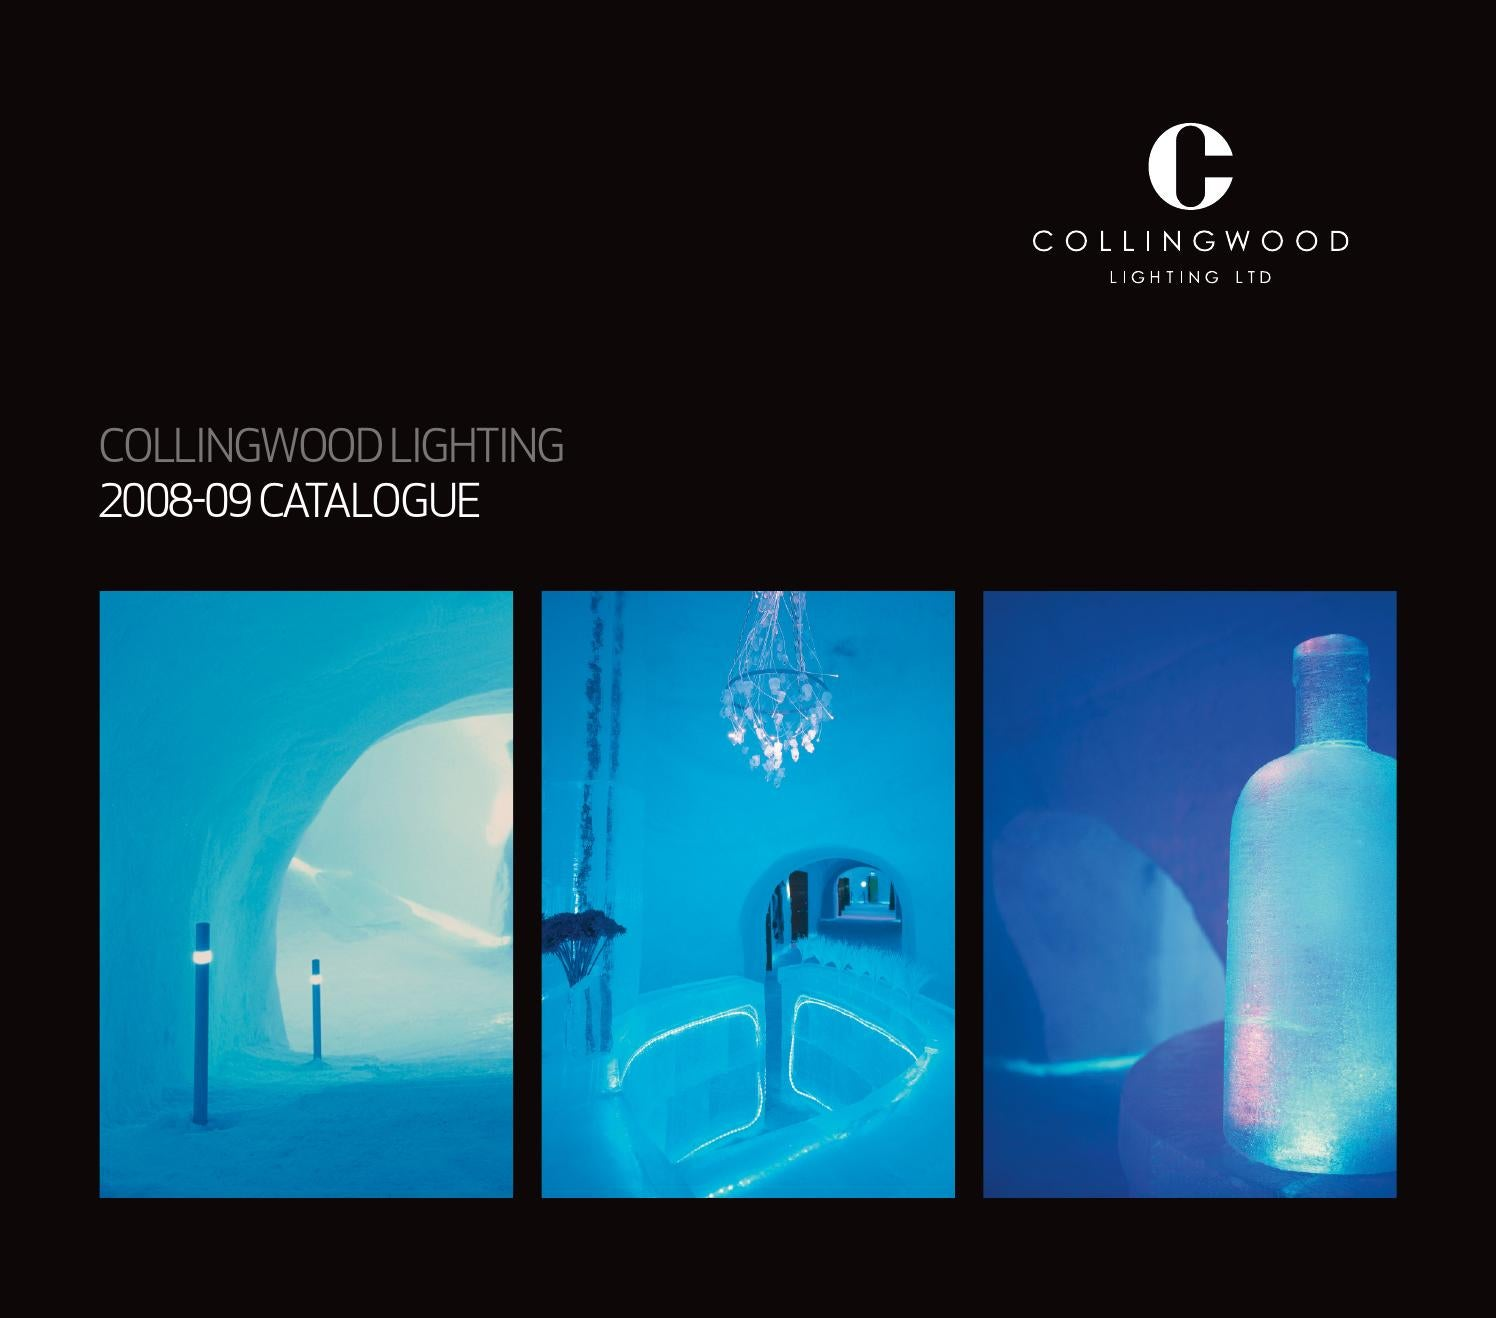 Collingwood Lighting Catalogue 2008 09 By Chris Twidale Issuu Led Lamp Lightings Gt Wholesale Lamps 5mm Leds